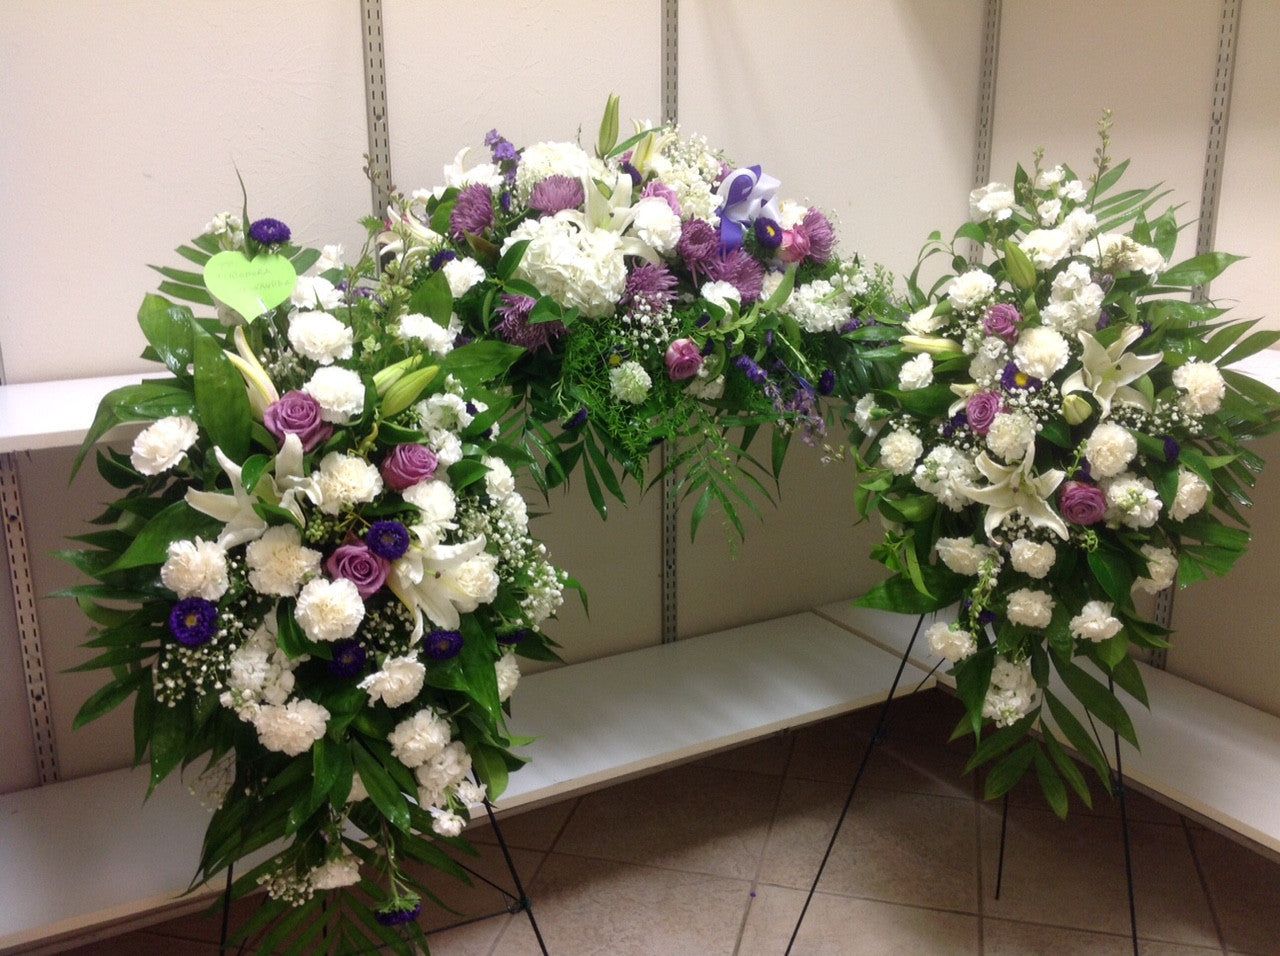 Funeral service package two easel one casket atx flowers funeral service package two easel one casket izmirmasajfo